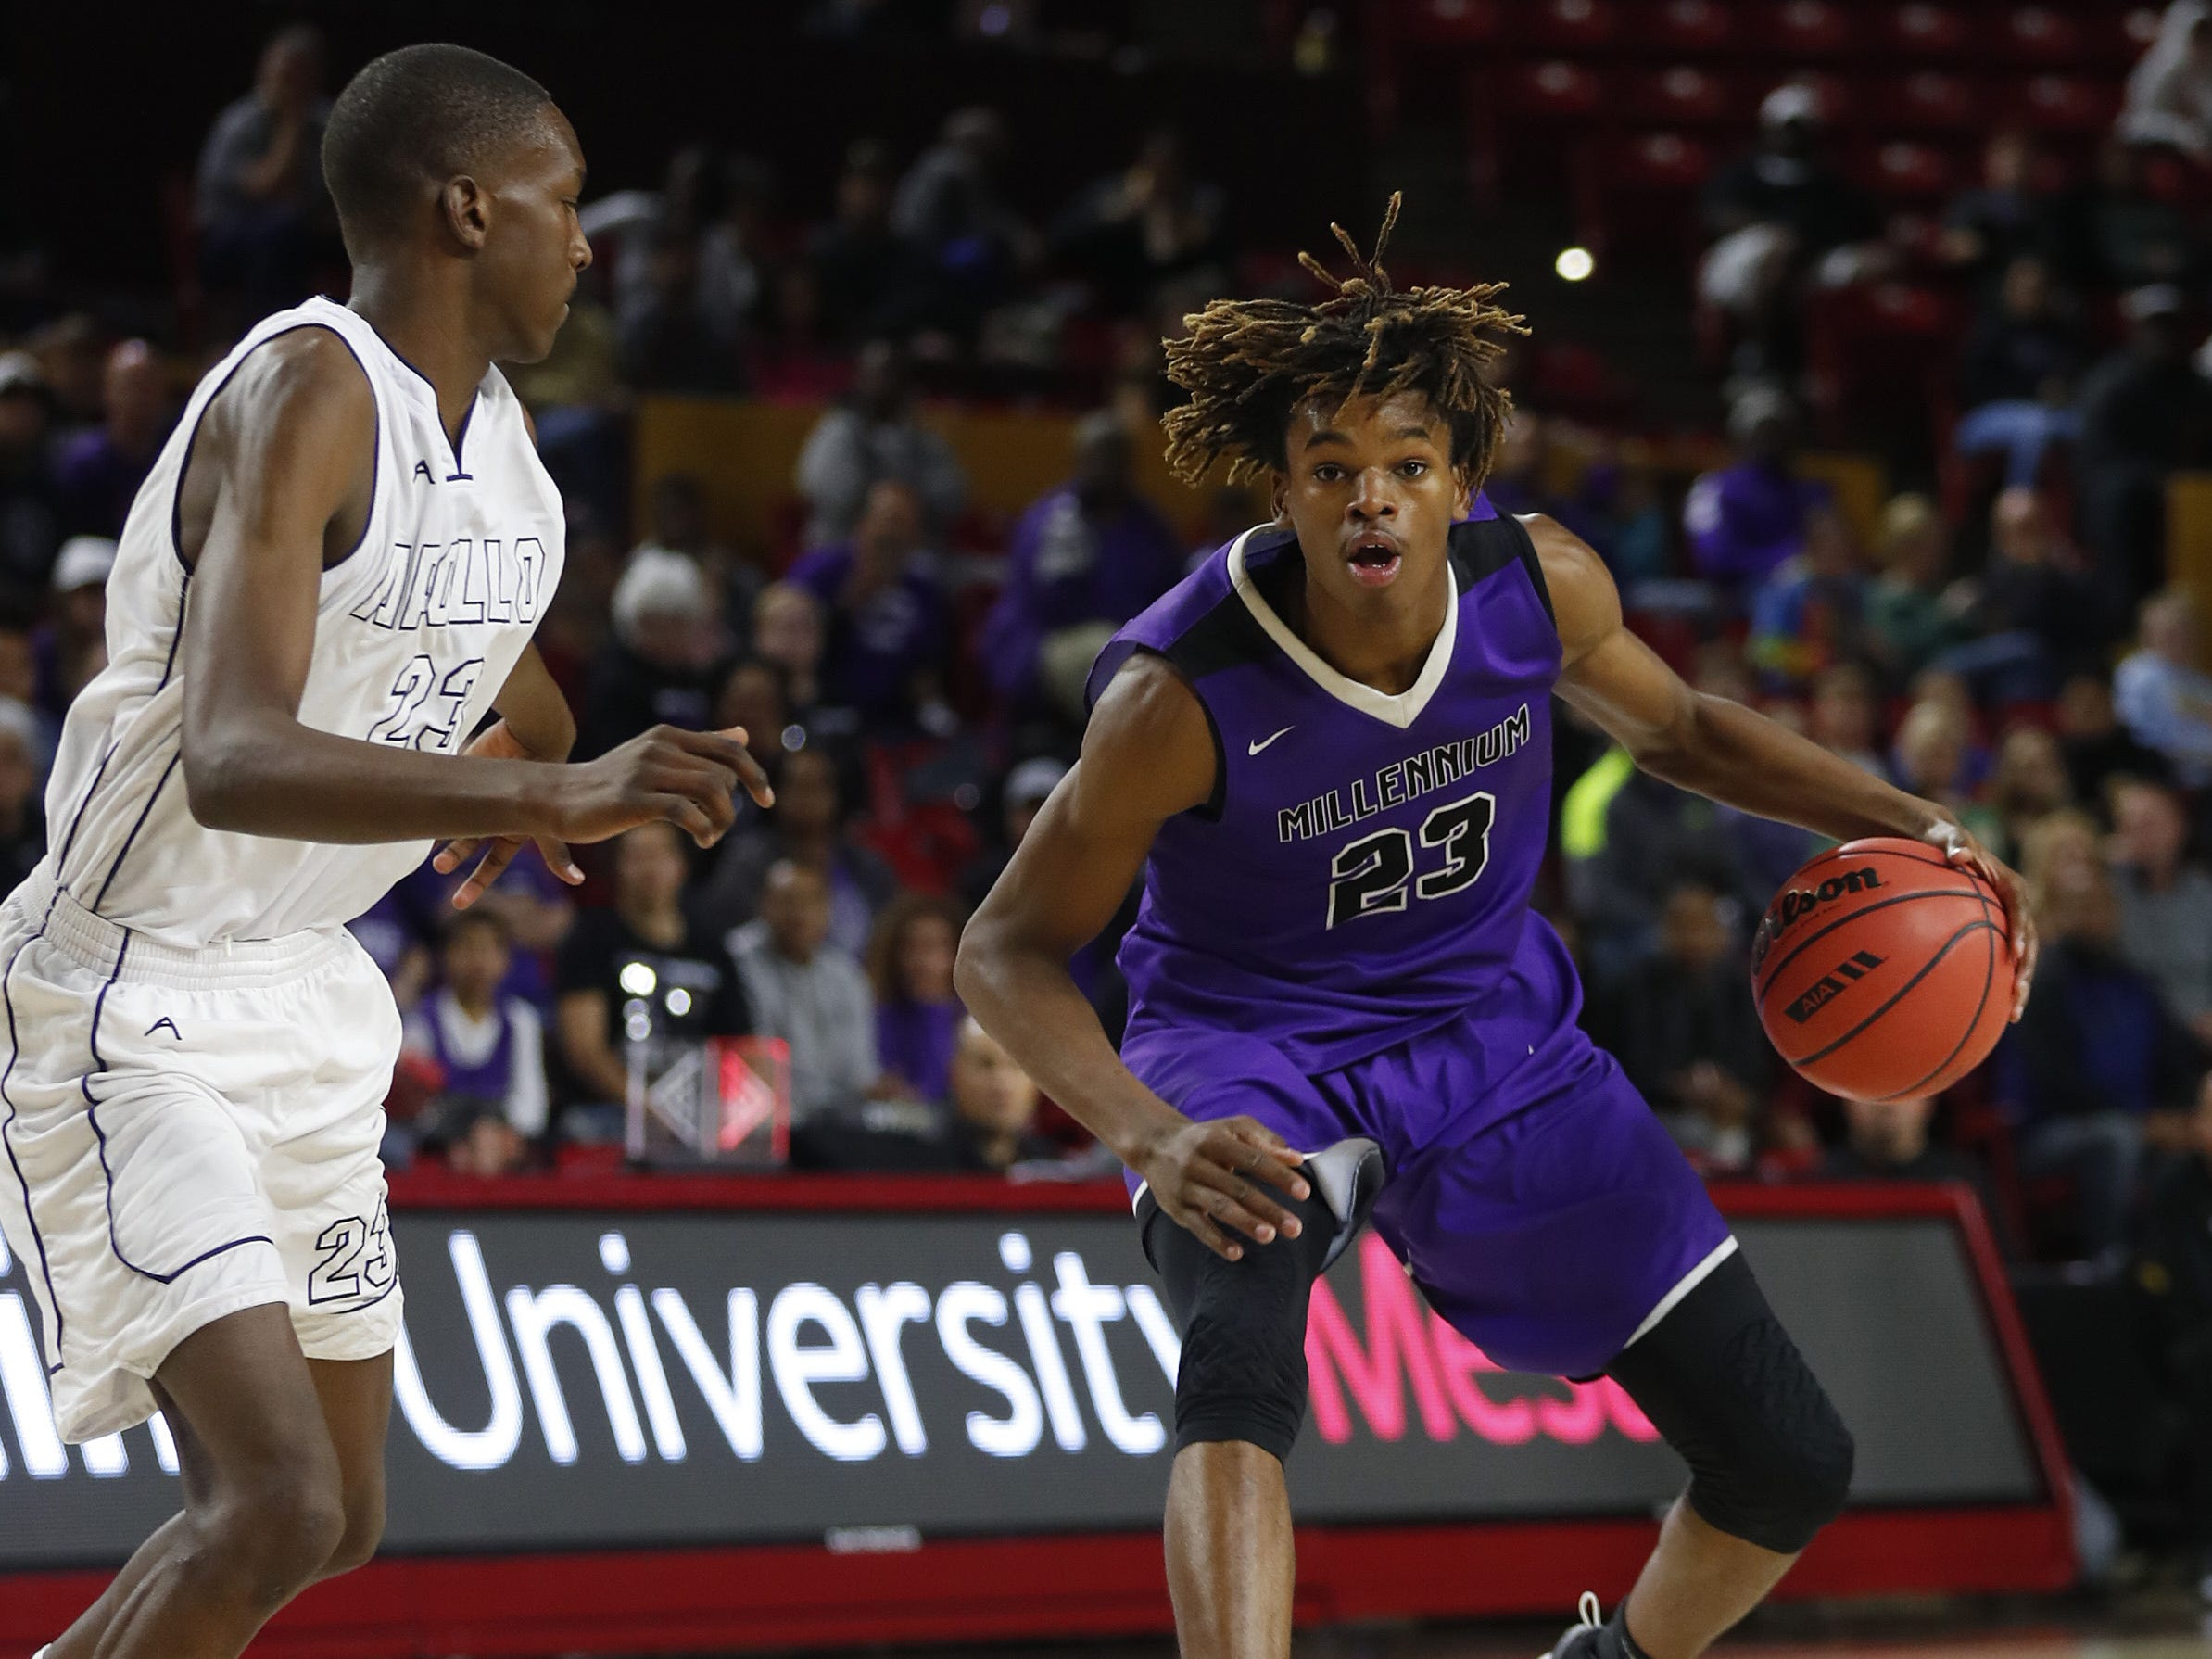 Millennium's DaRon Holmes (23) dribbles against Apollo's Emmanuel Taban (23) during the 5A boys basketball state semifinal game at Wells Fargo Arena in Tempe, Ariz. on February 18, 2019.